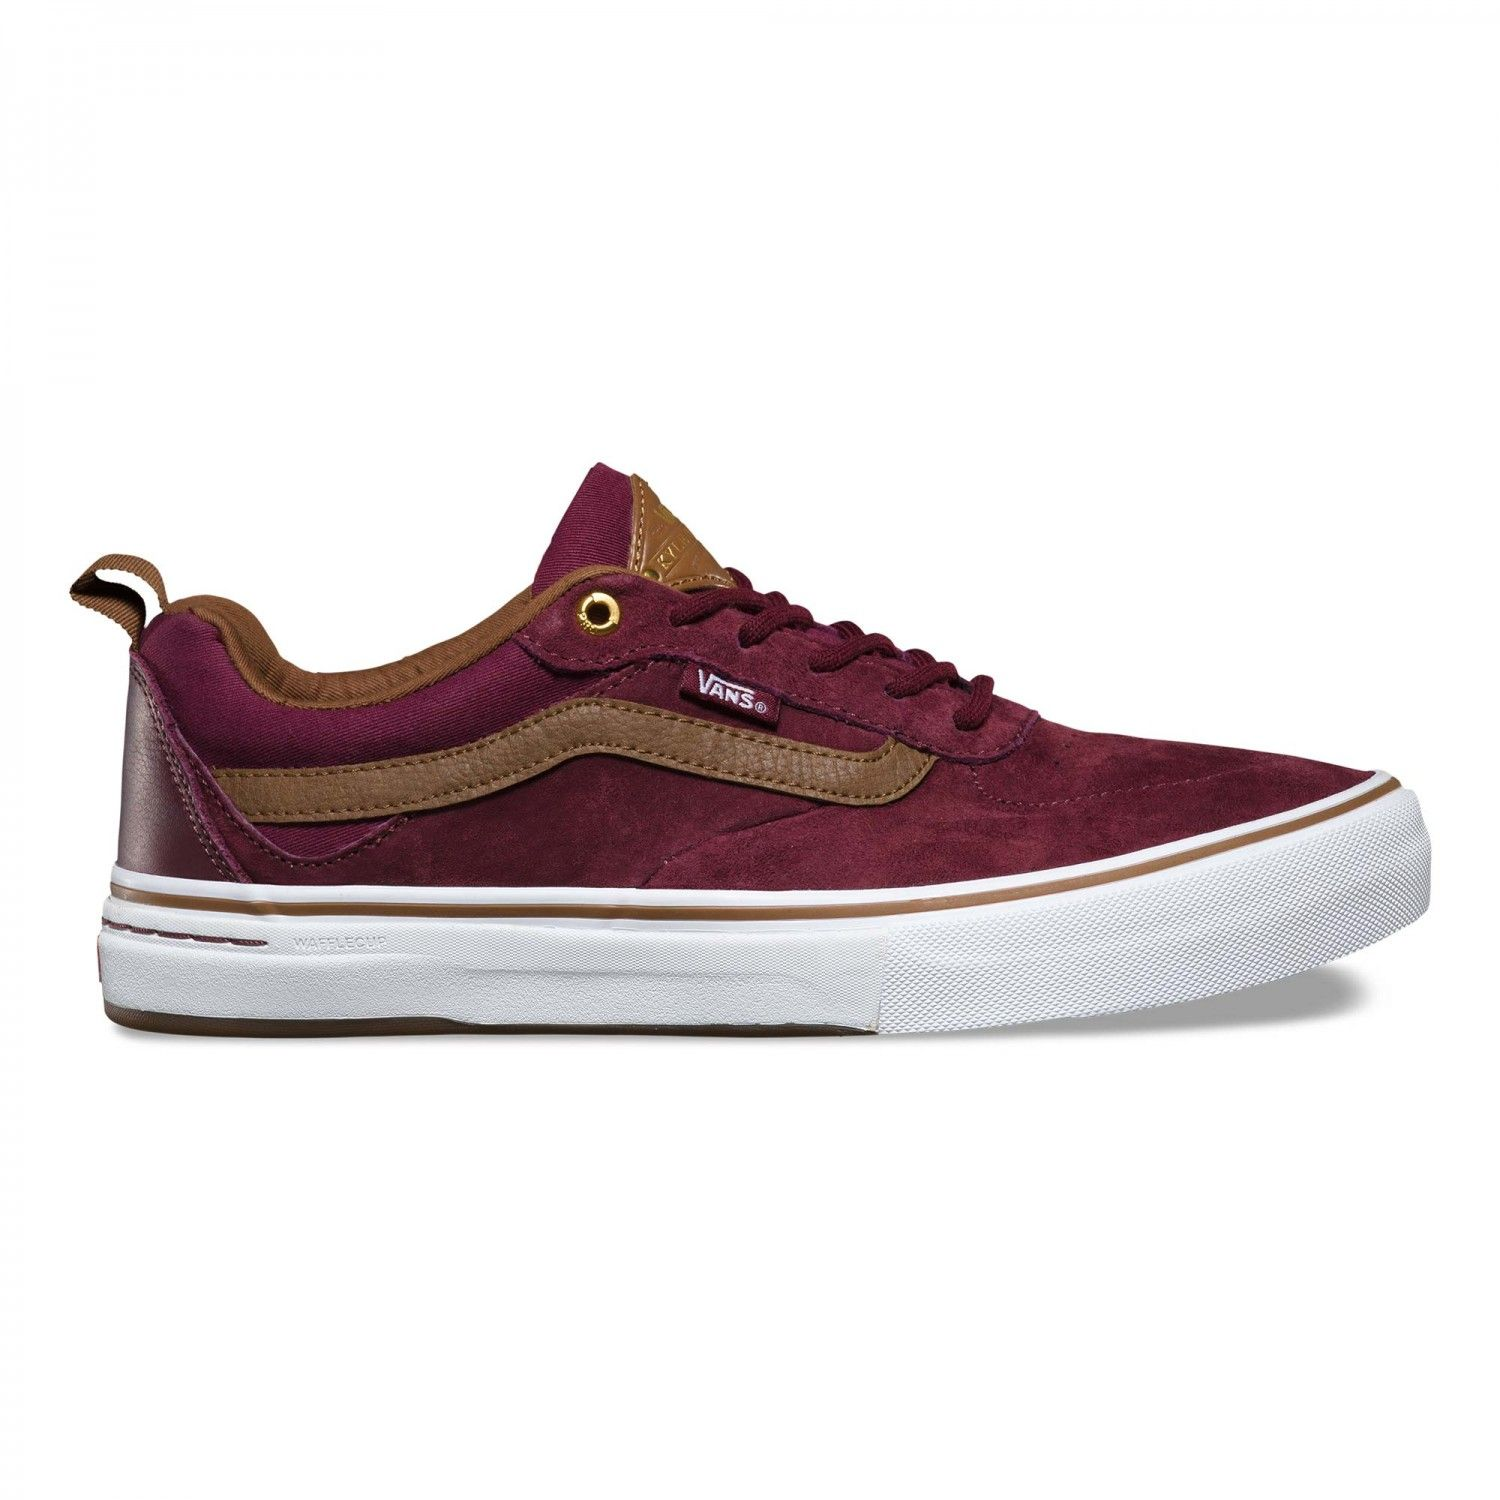 Vans Vans Kyle Walker Pro Shoes Red Dahlia Vans UK